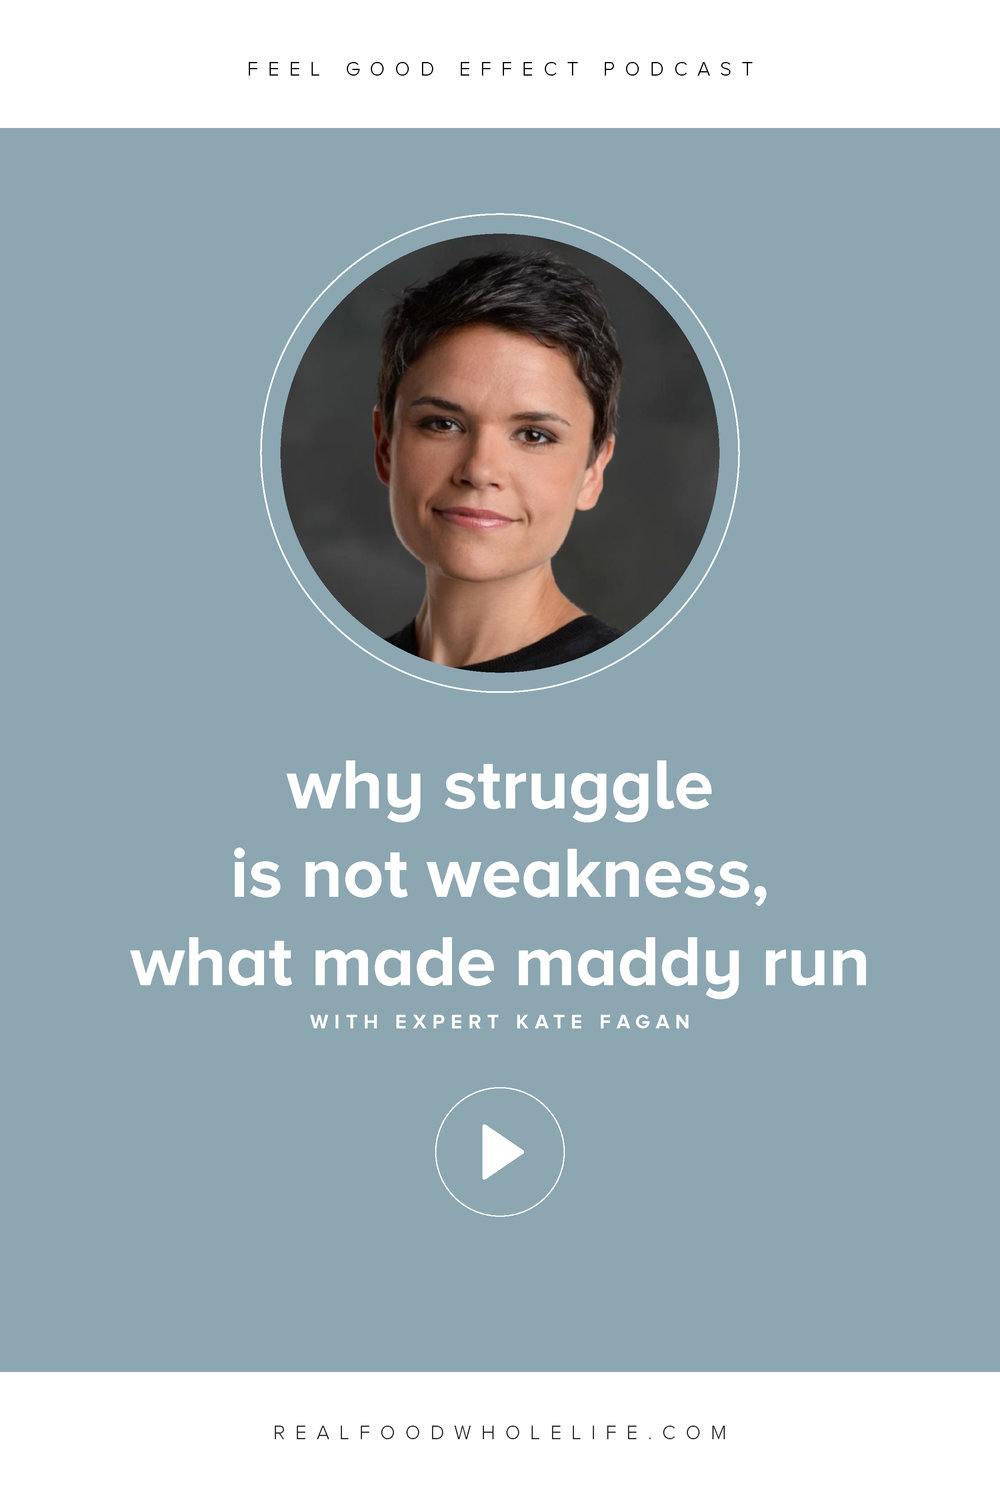 Why Struggle is Not Weakness with Kate Fagan, What Made Maddy Run, Feel Good Effect Podcast